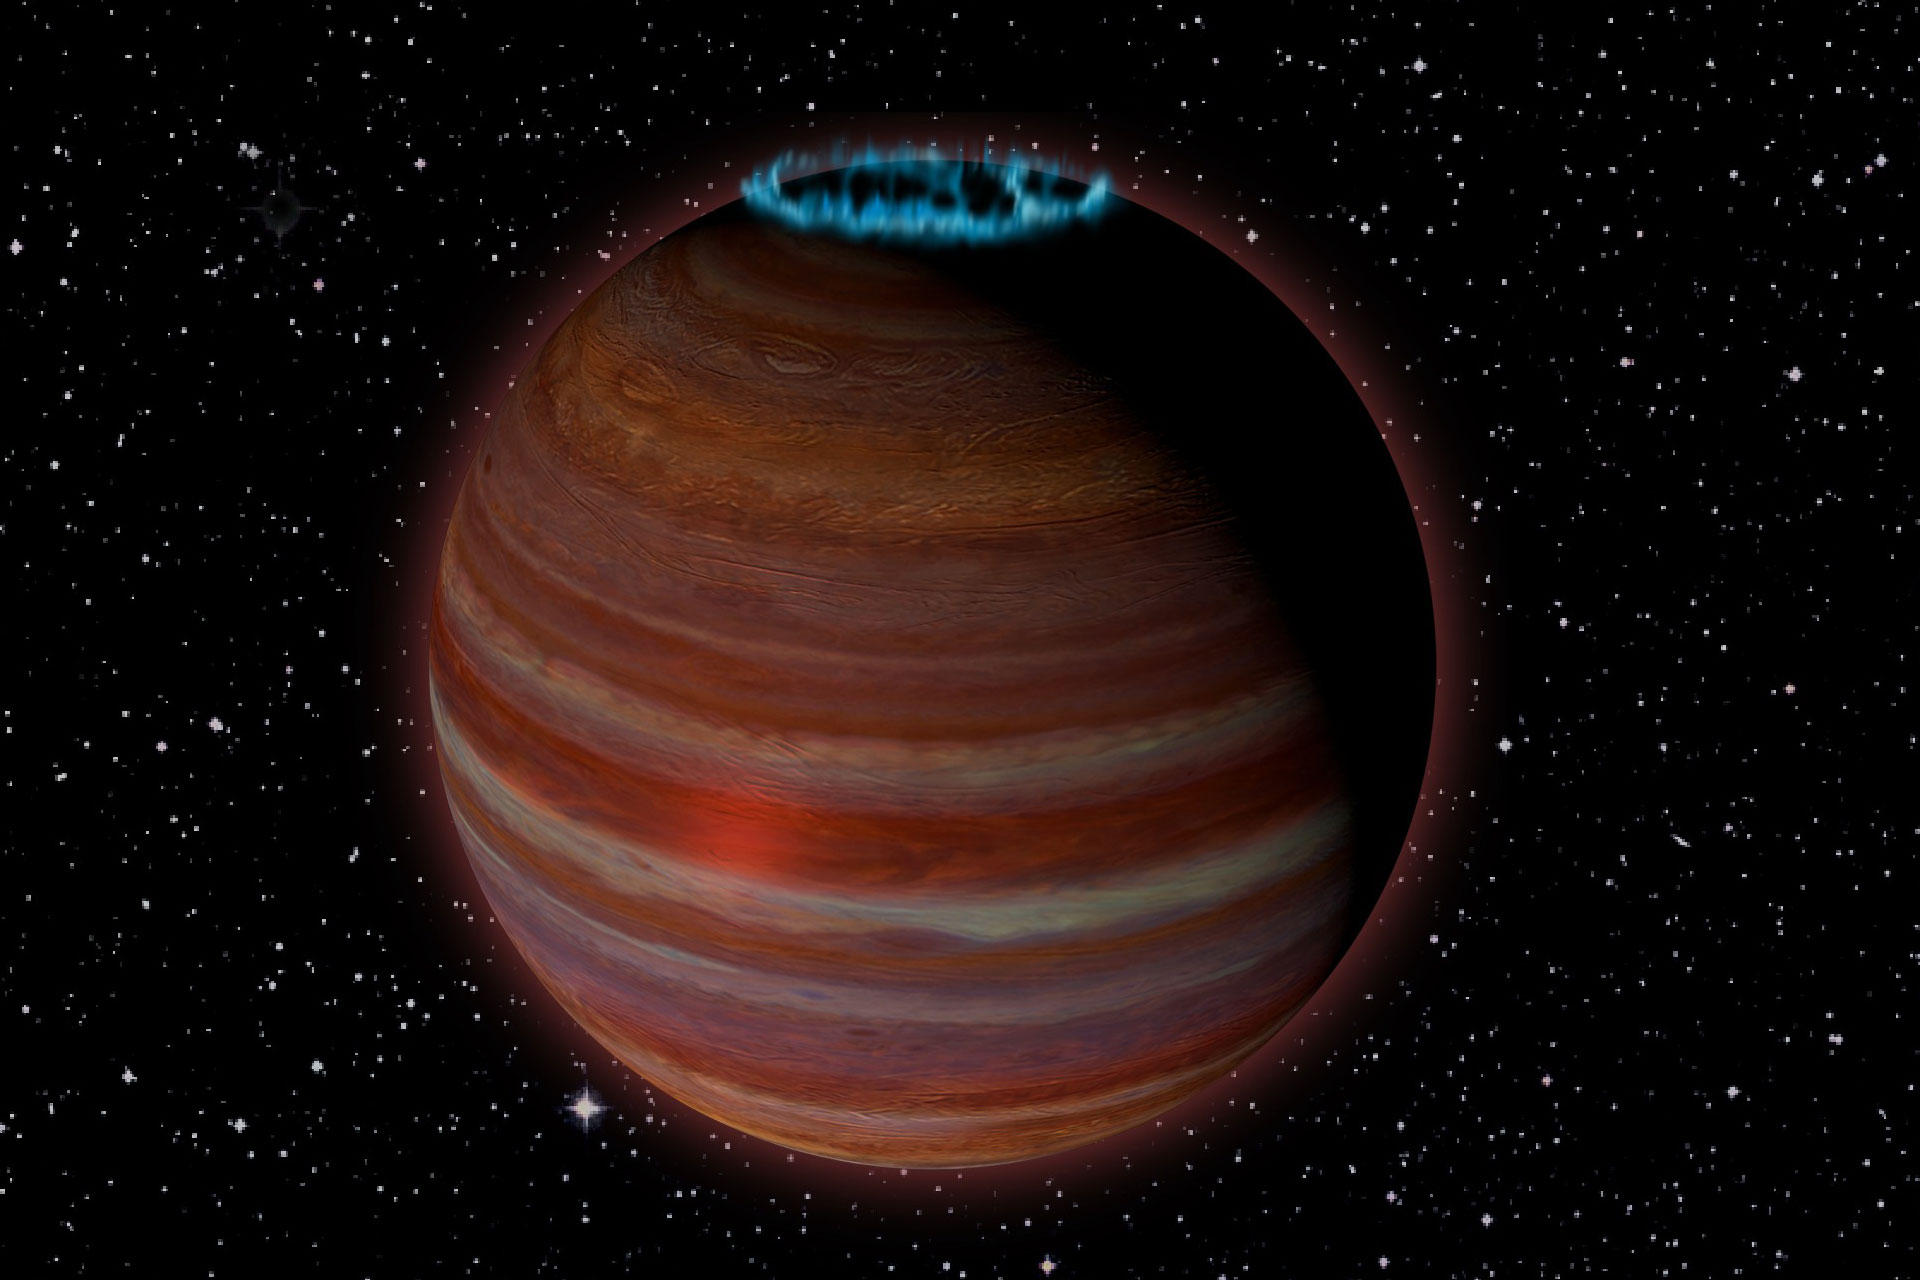 Rogue planet with mystical aurora discovered drifting beyond our solar system